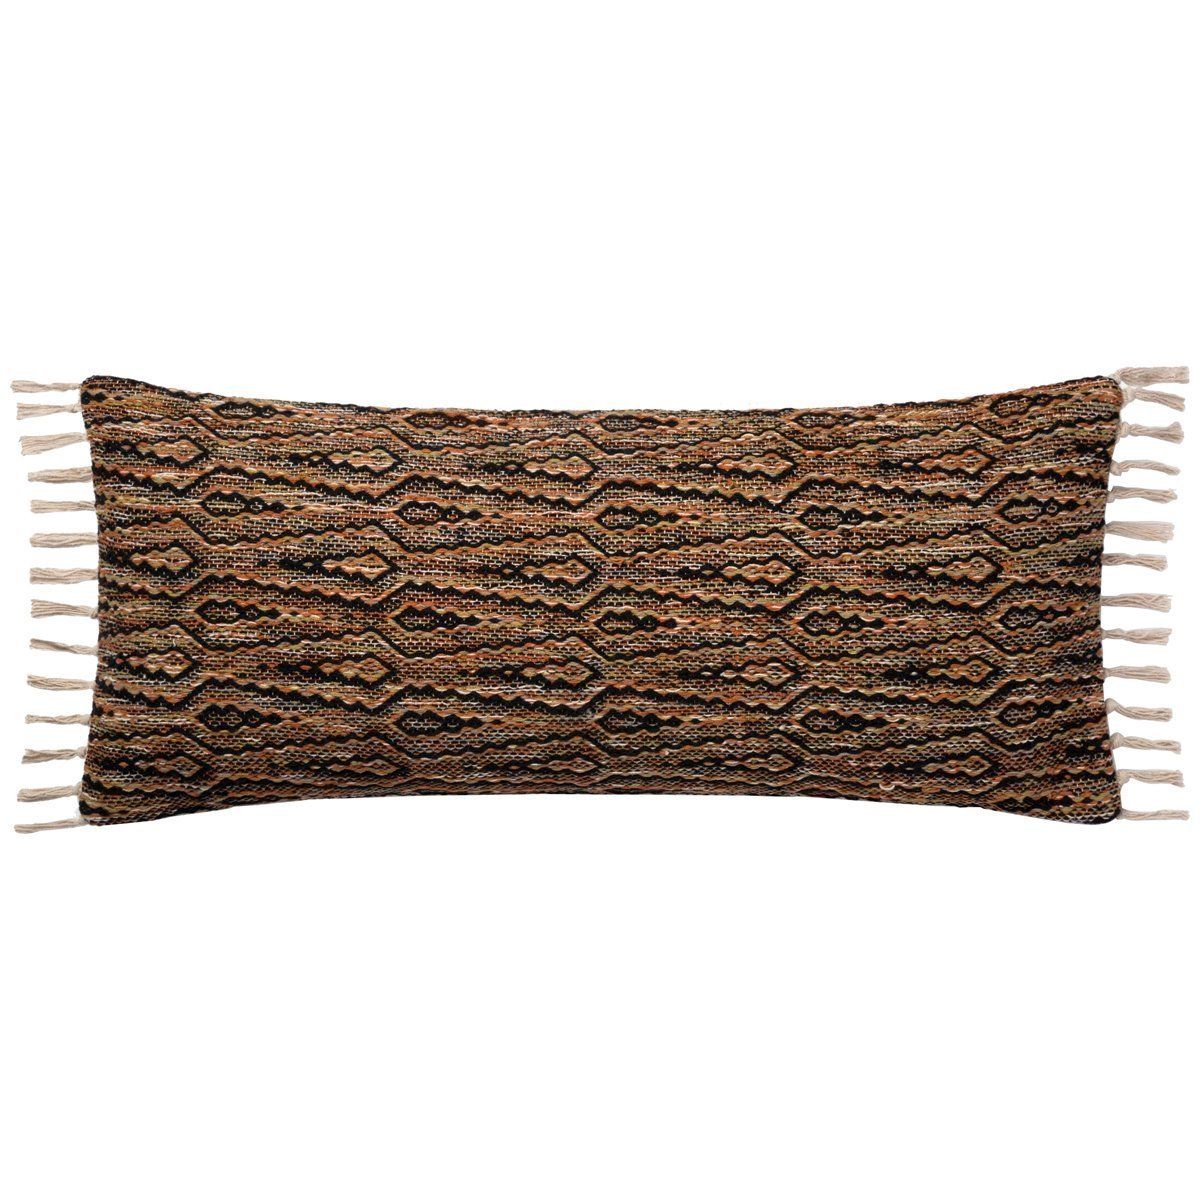 Loloi P0669 Pillow Set of 2